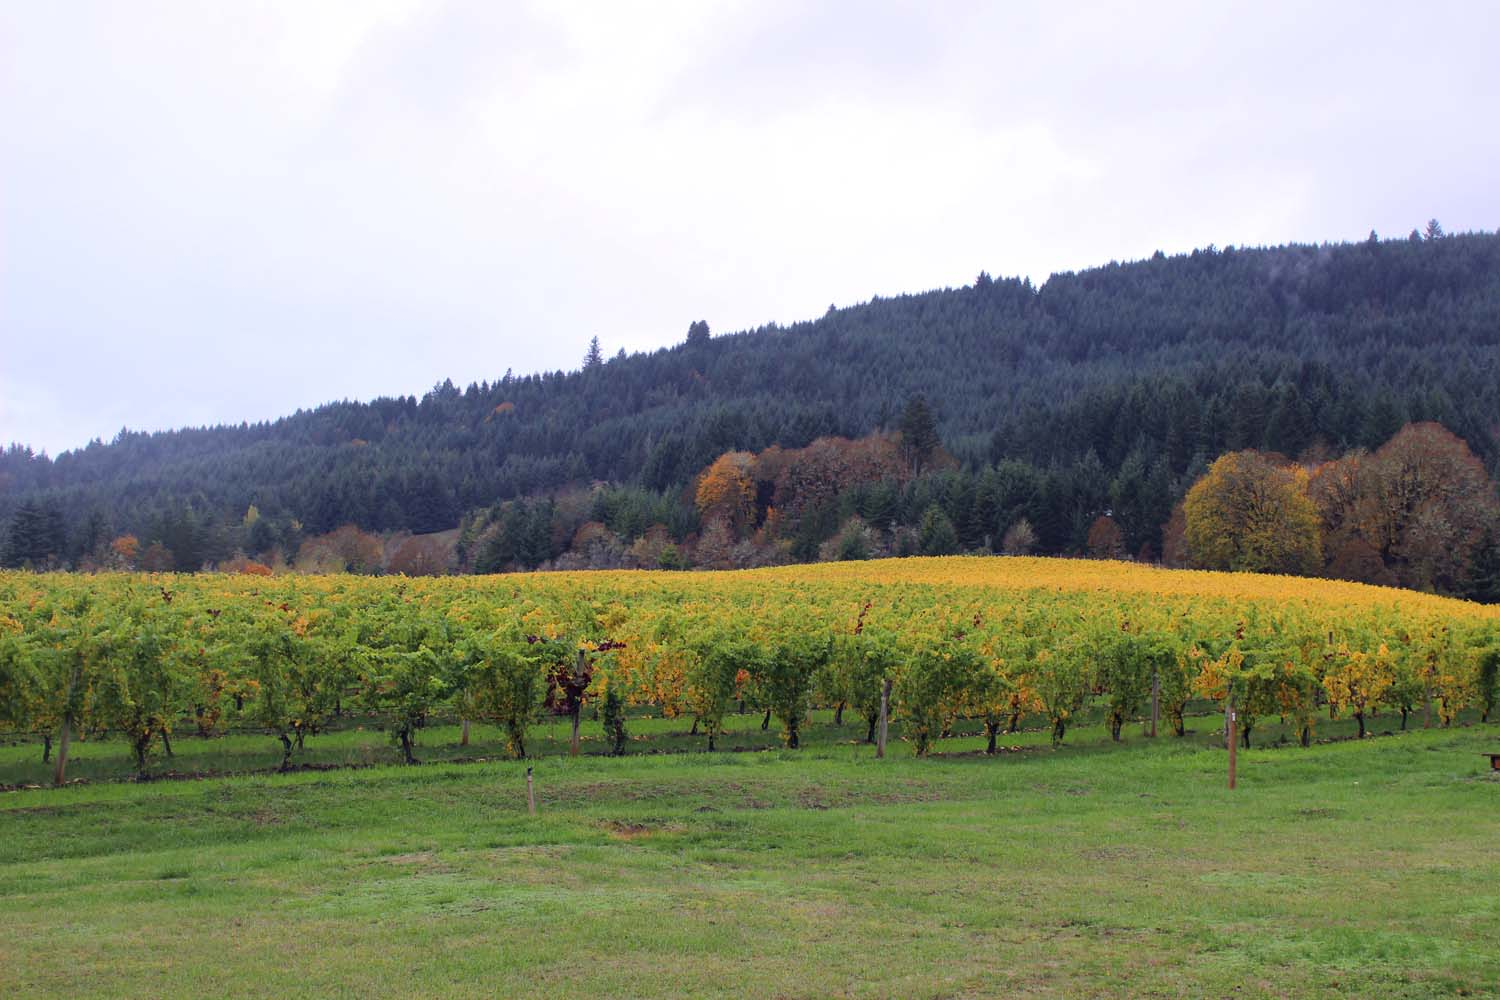 Willamette Valley Wine Country, Oregon     Image:  Laura Messersmith